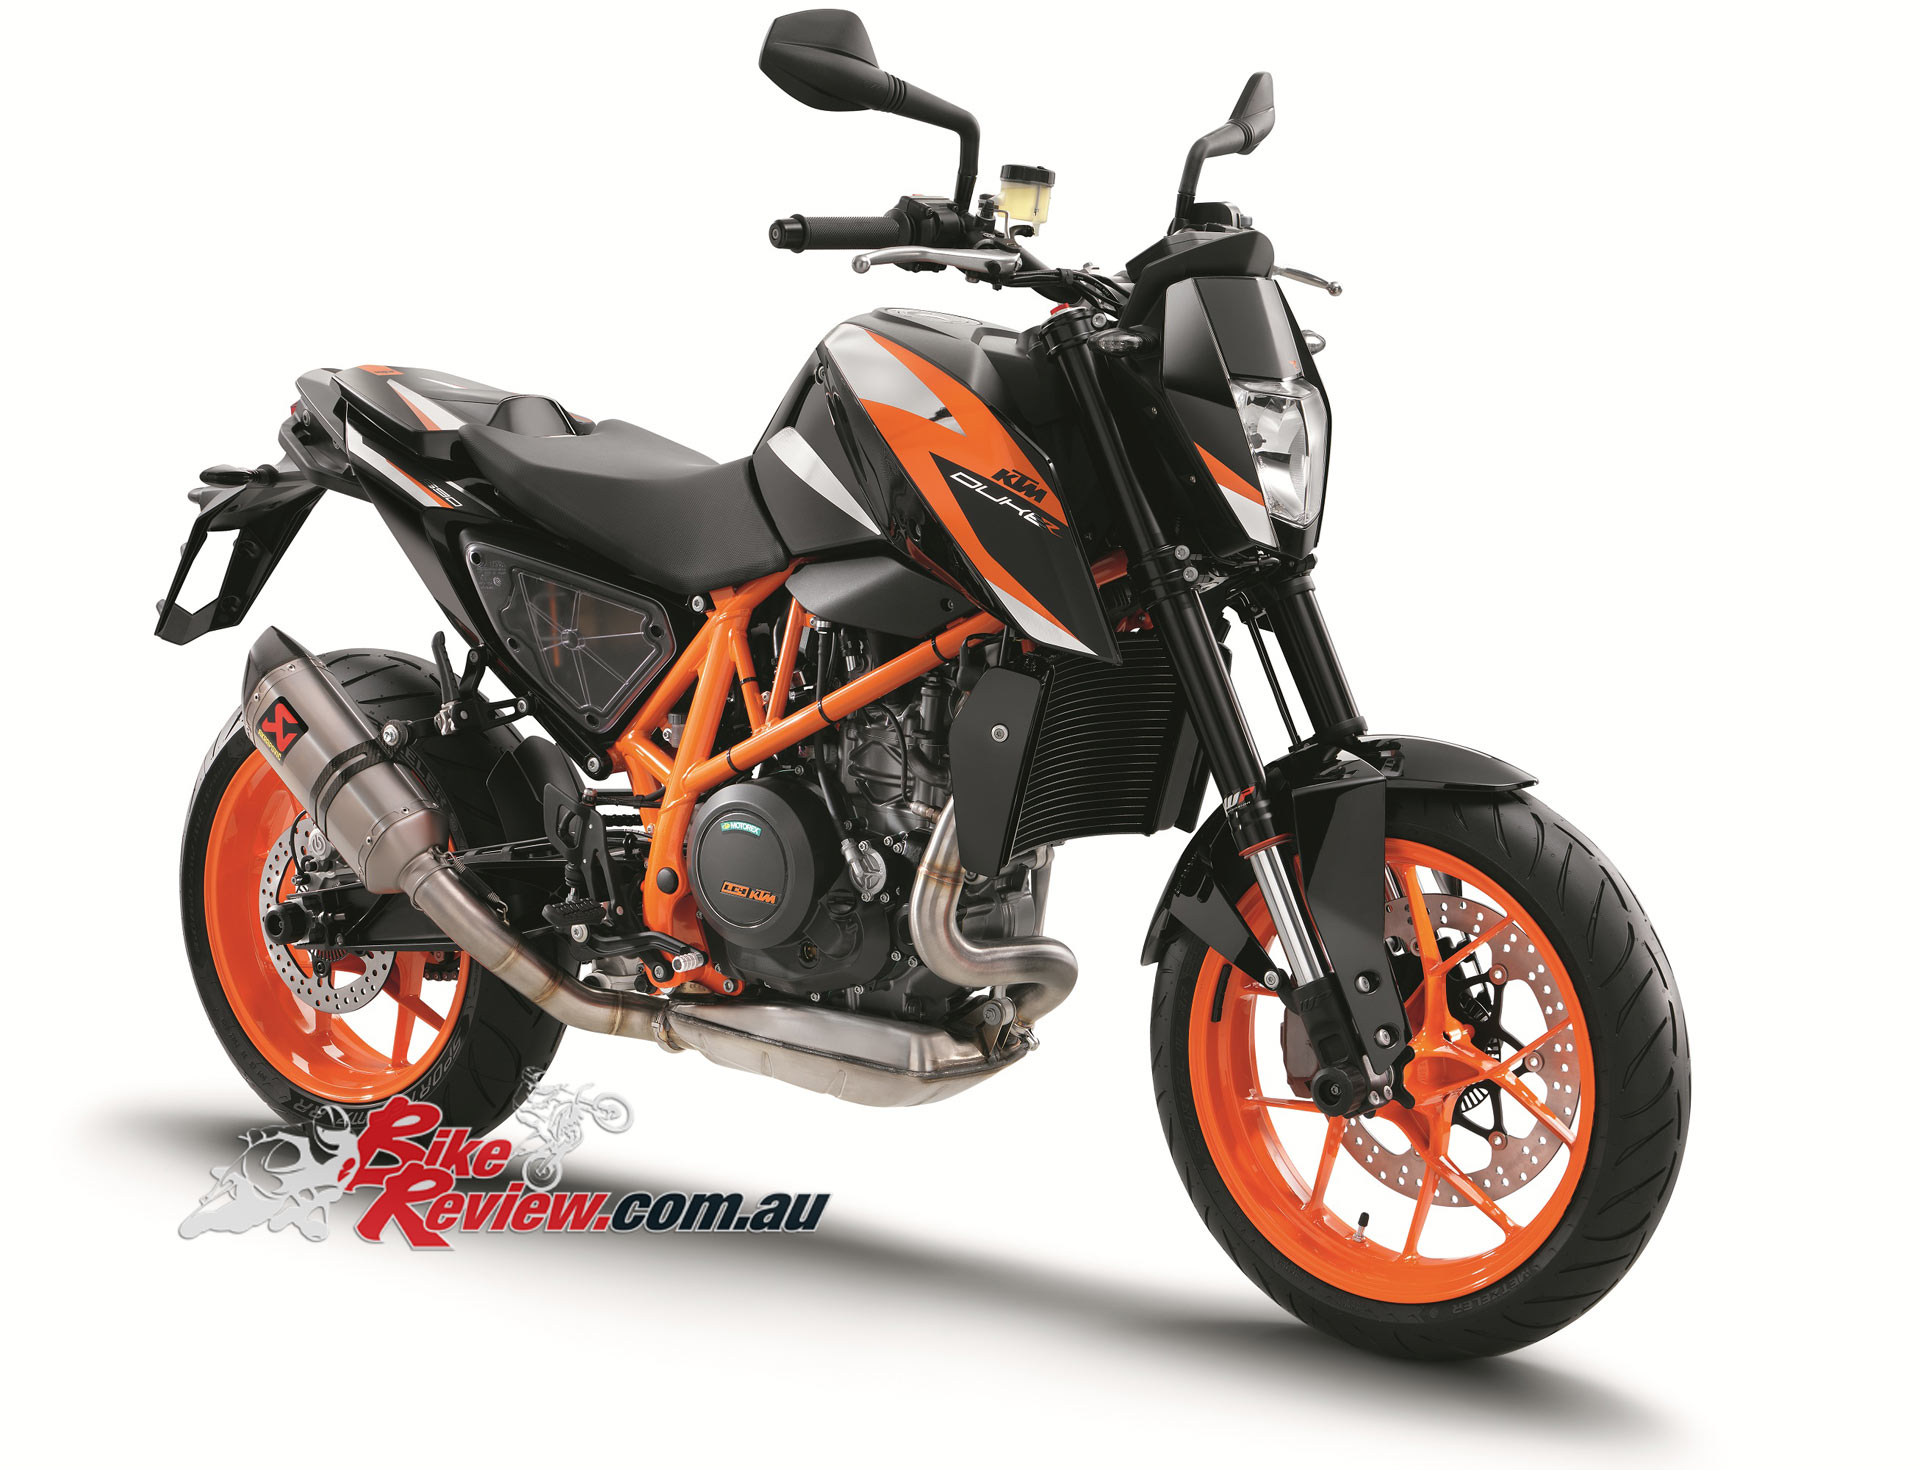 review 2016 ktm 690 duke r bike review. Black Bedroom Furniture Sets. Home Design Ideas